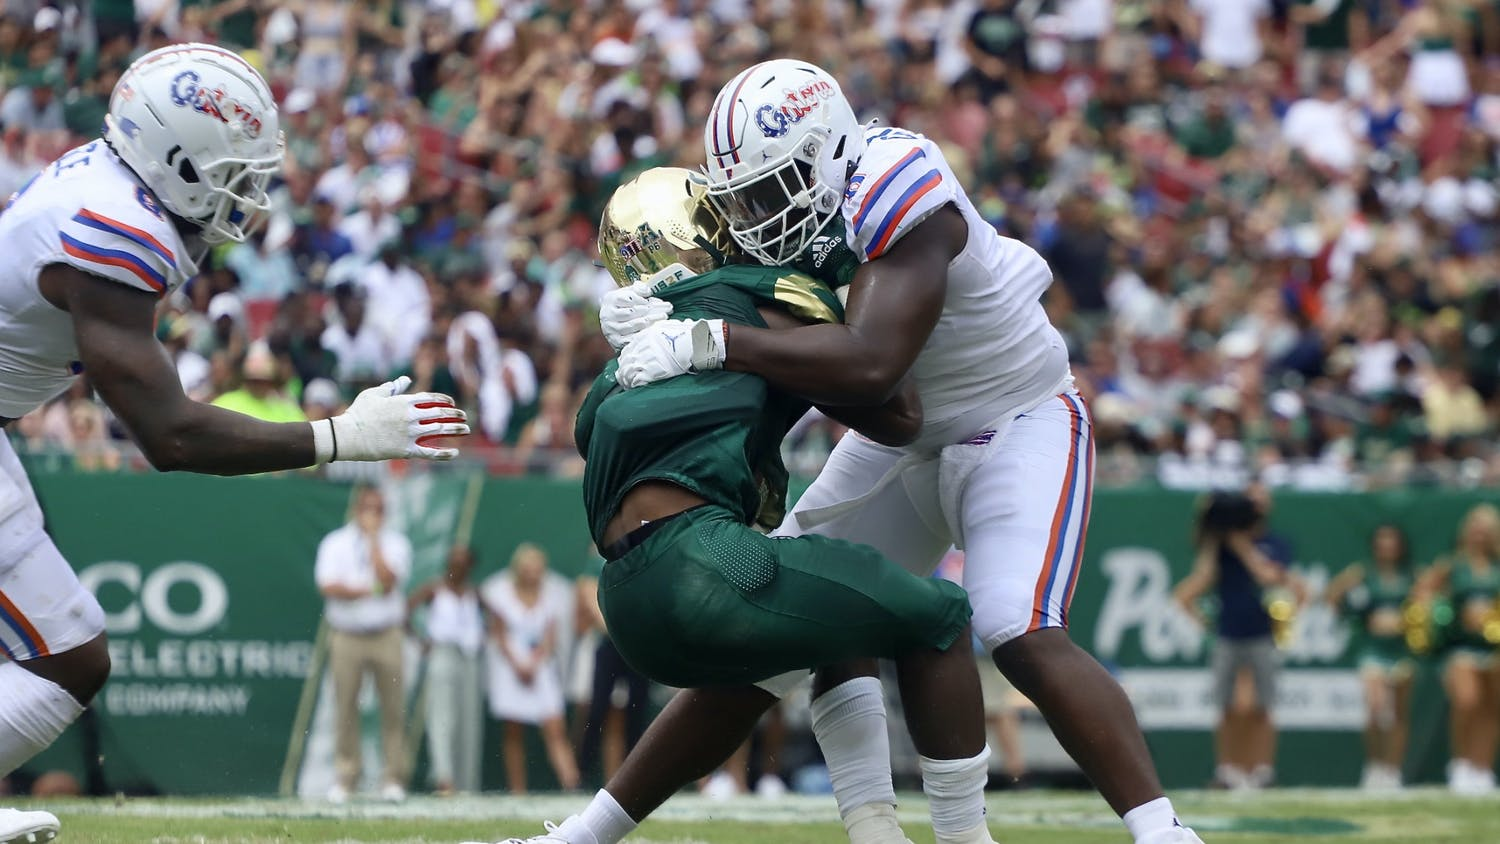 Florida defensive end Zachary Carter tackles a USF ball carrier on Sept. 11. Carter will look to add to his three sacks this season this Saturday versus Alabama.